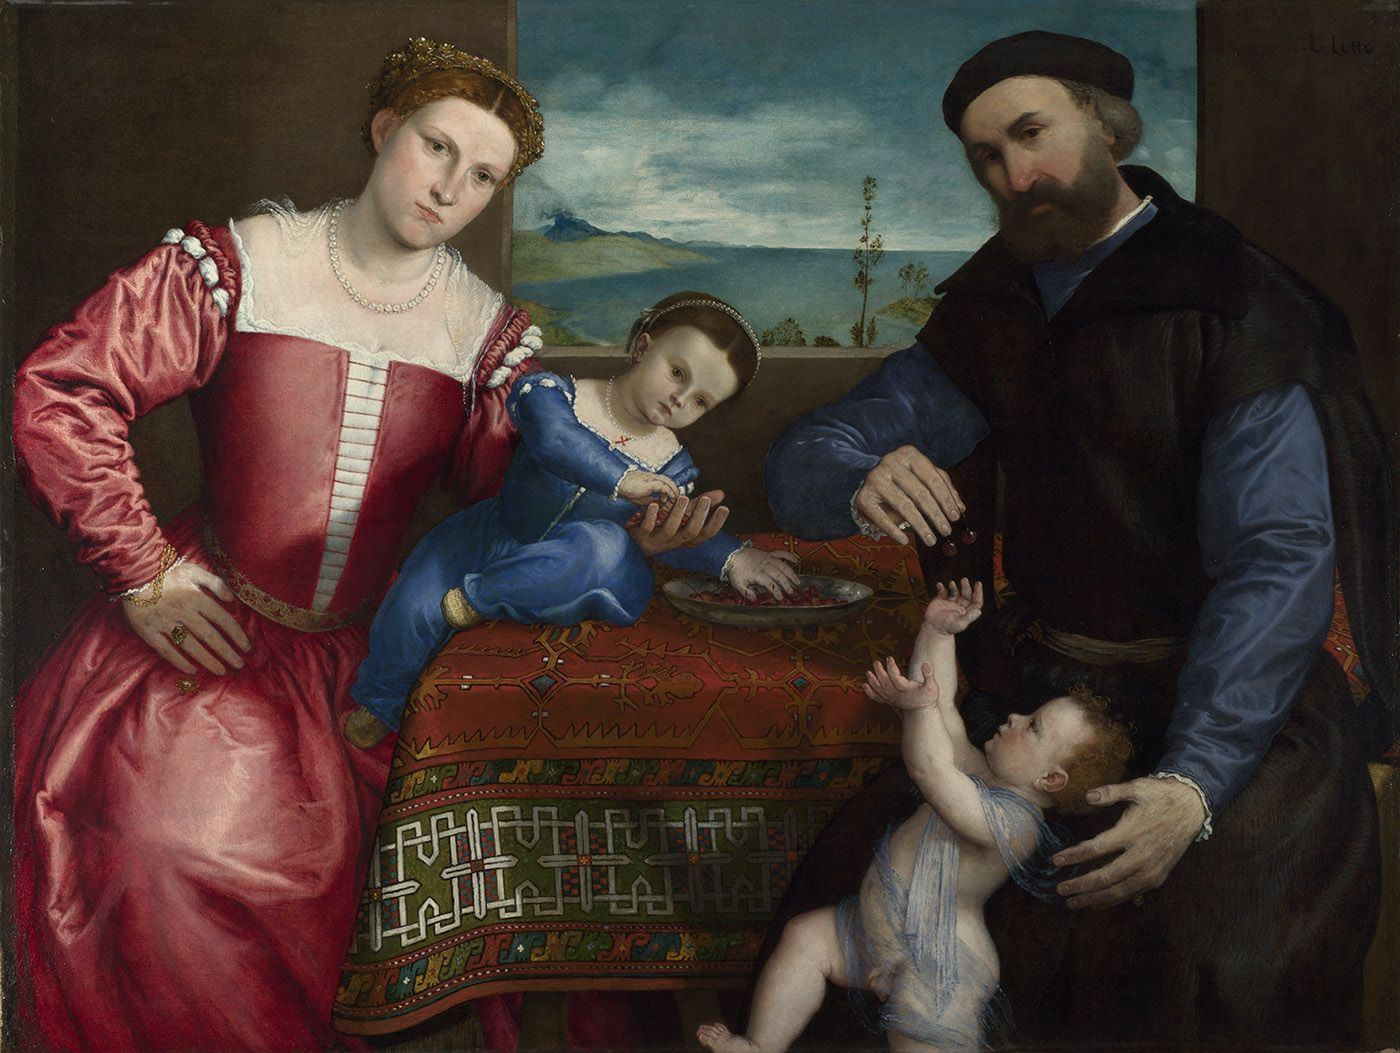 Lorenzo Lotto  Portrait of Giovanni della Volta with his Wife and Children  completed 1547  Oil on canvas  104.5 x 138 cm  © The National Gallery, London